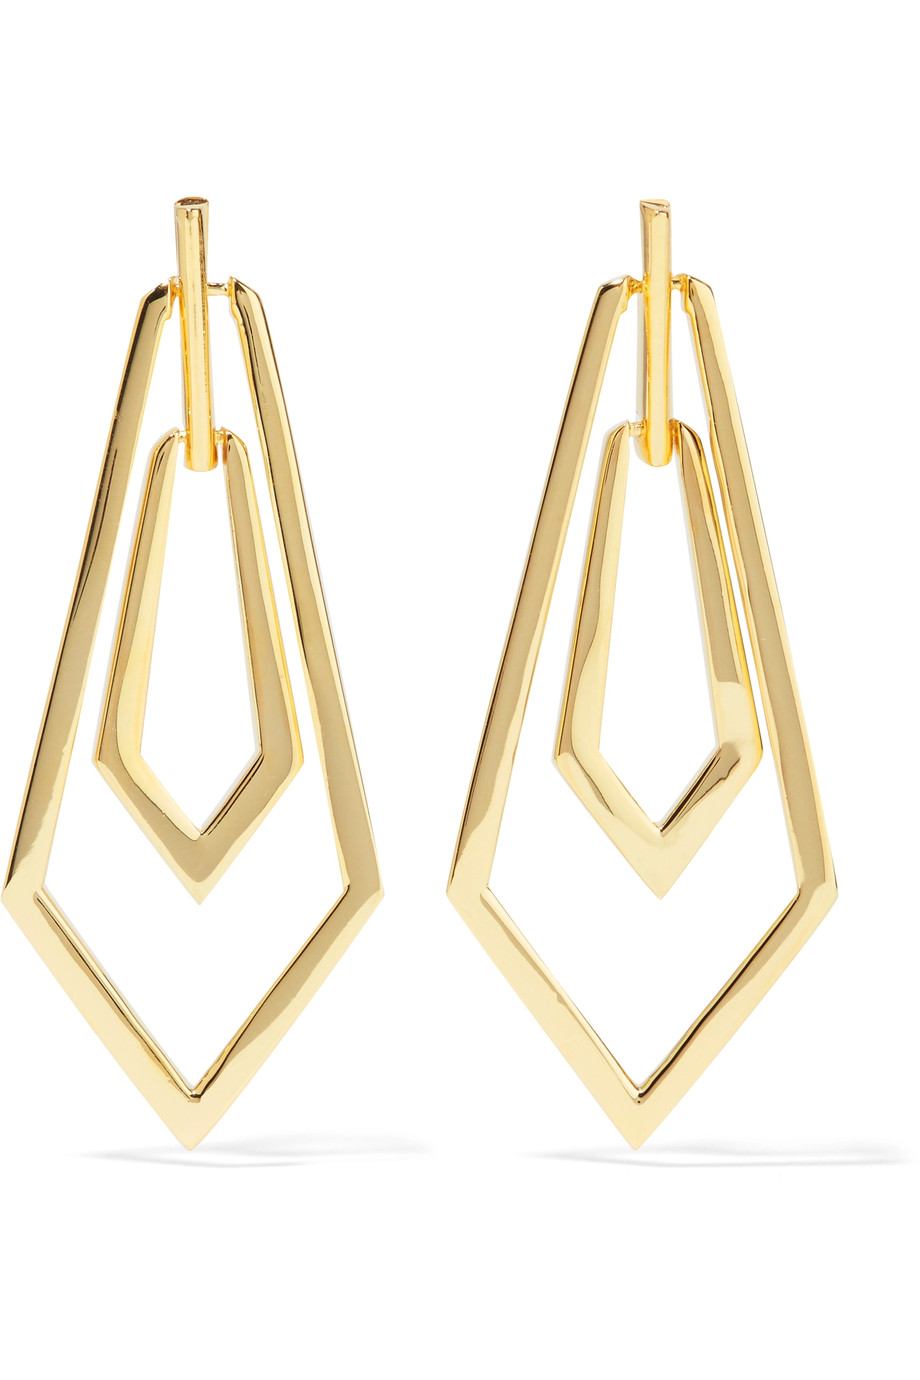 Noir Jewelry   Maximilian Gold Tone Earrings , £27 on The Outnet -  could be tempted to get my ears pierced just to wear these...